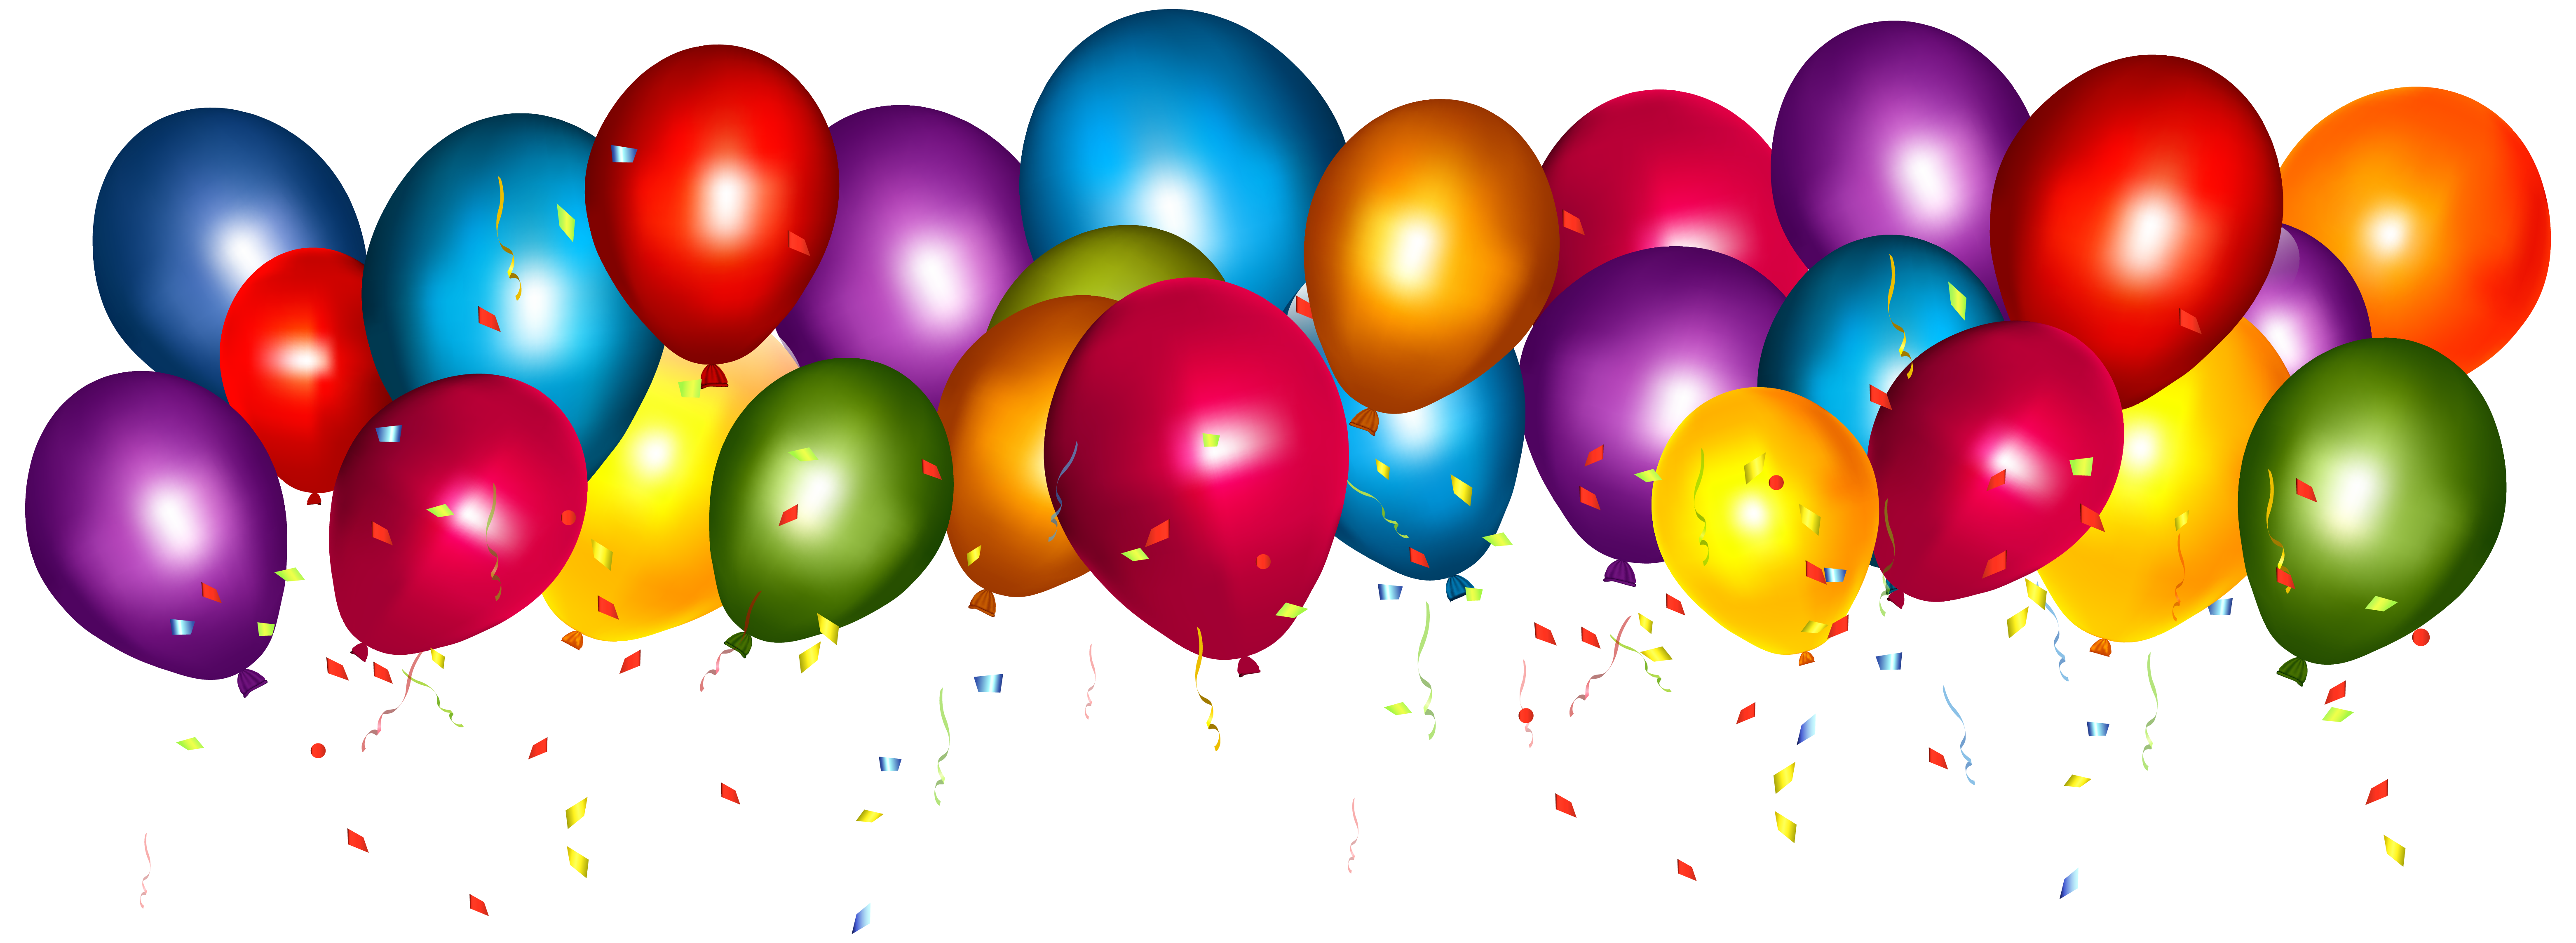 Transparent Colorful Balloons with Confetti PNG Clipar 6250x2287